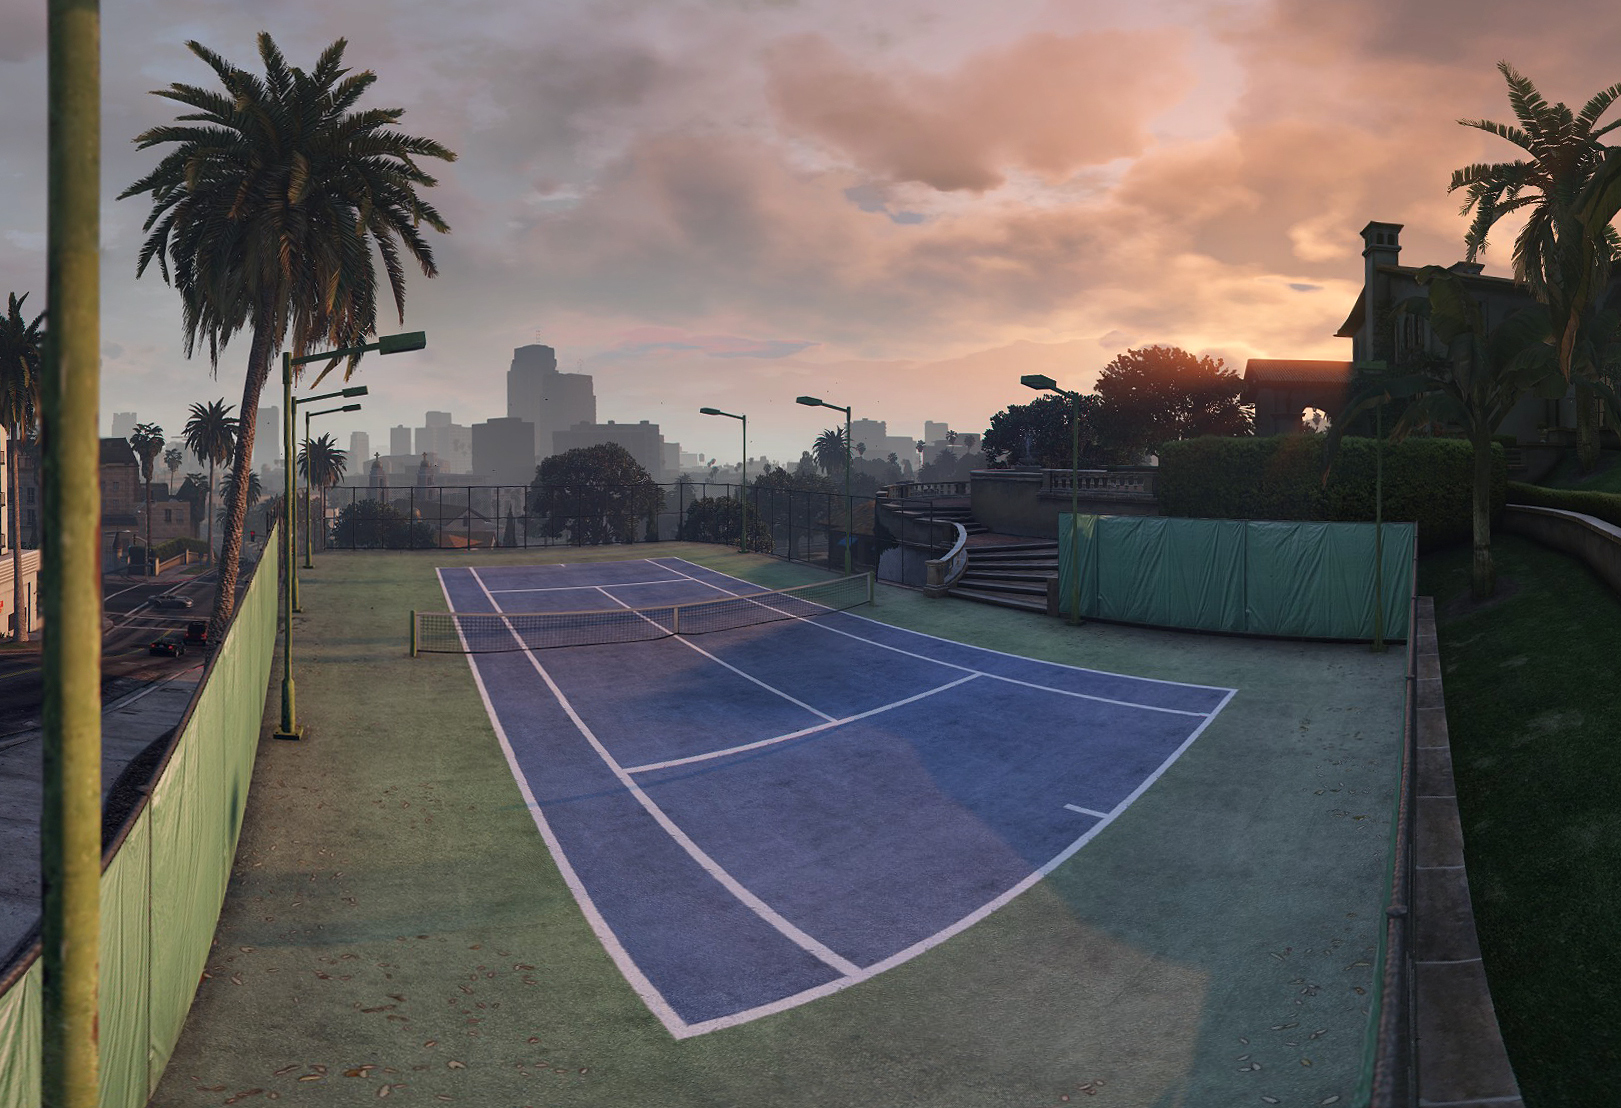 Rockford Drive Private Tennis Court High Res Pano Illsnapmatix